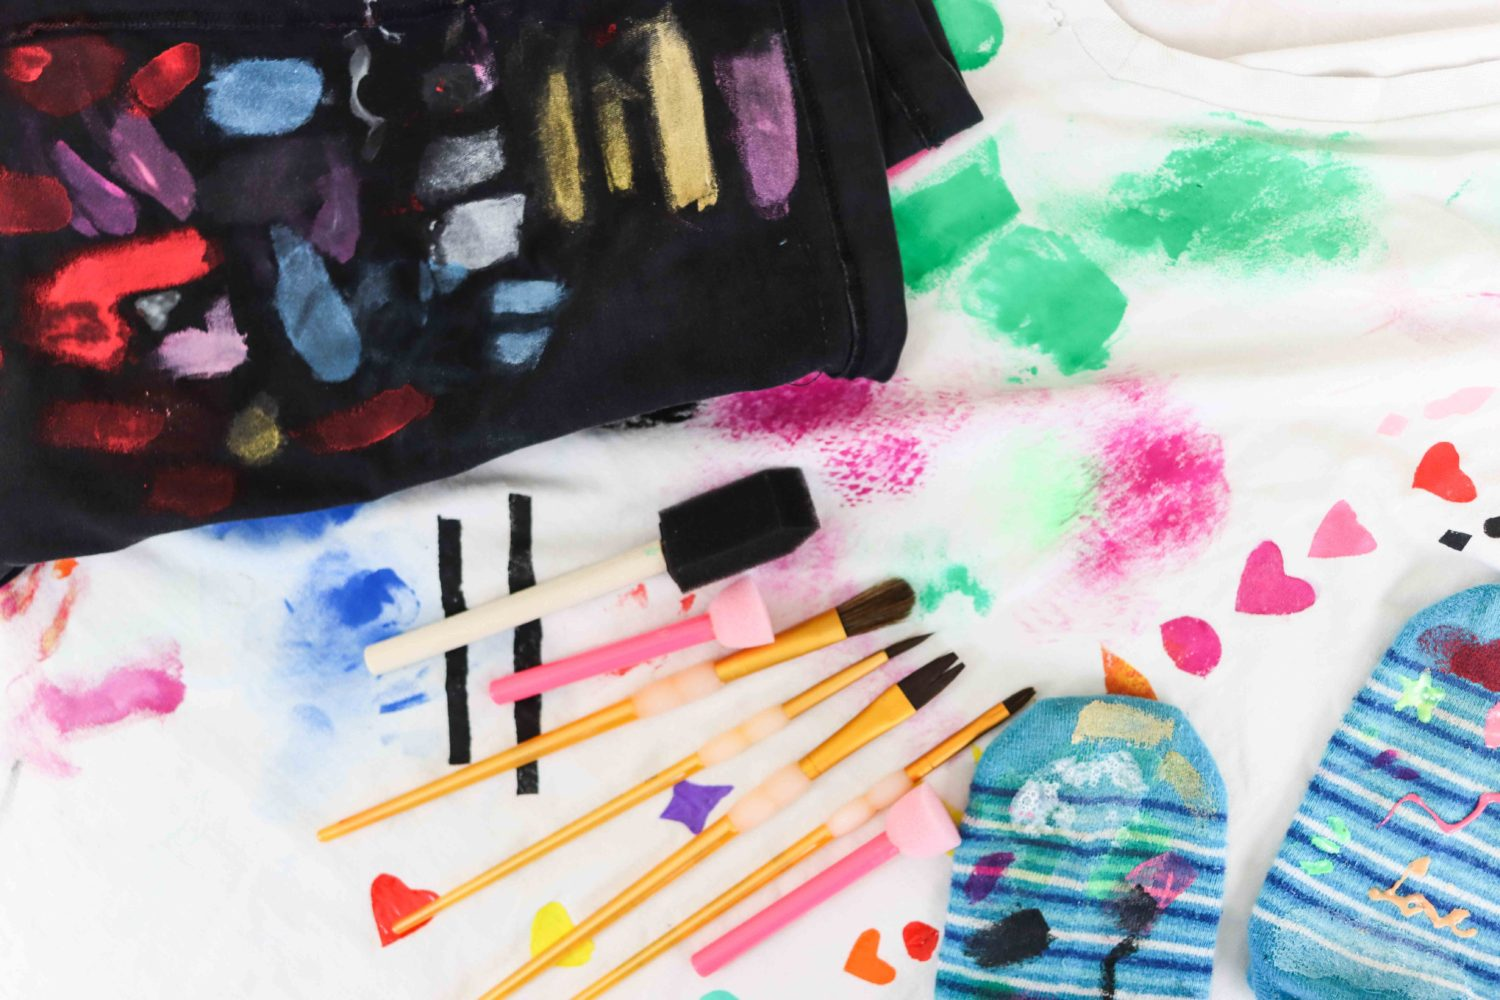 fabric paint brushes with different types of fabric to see pigmentation